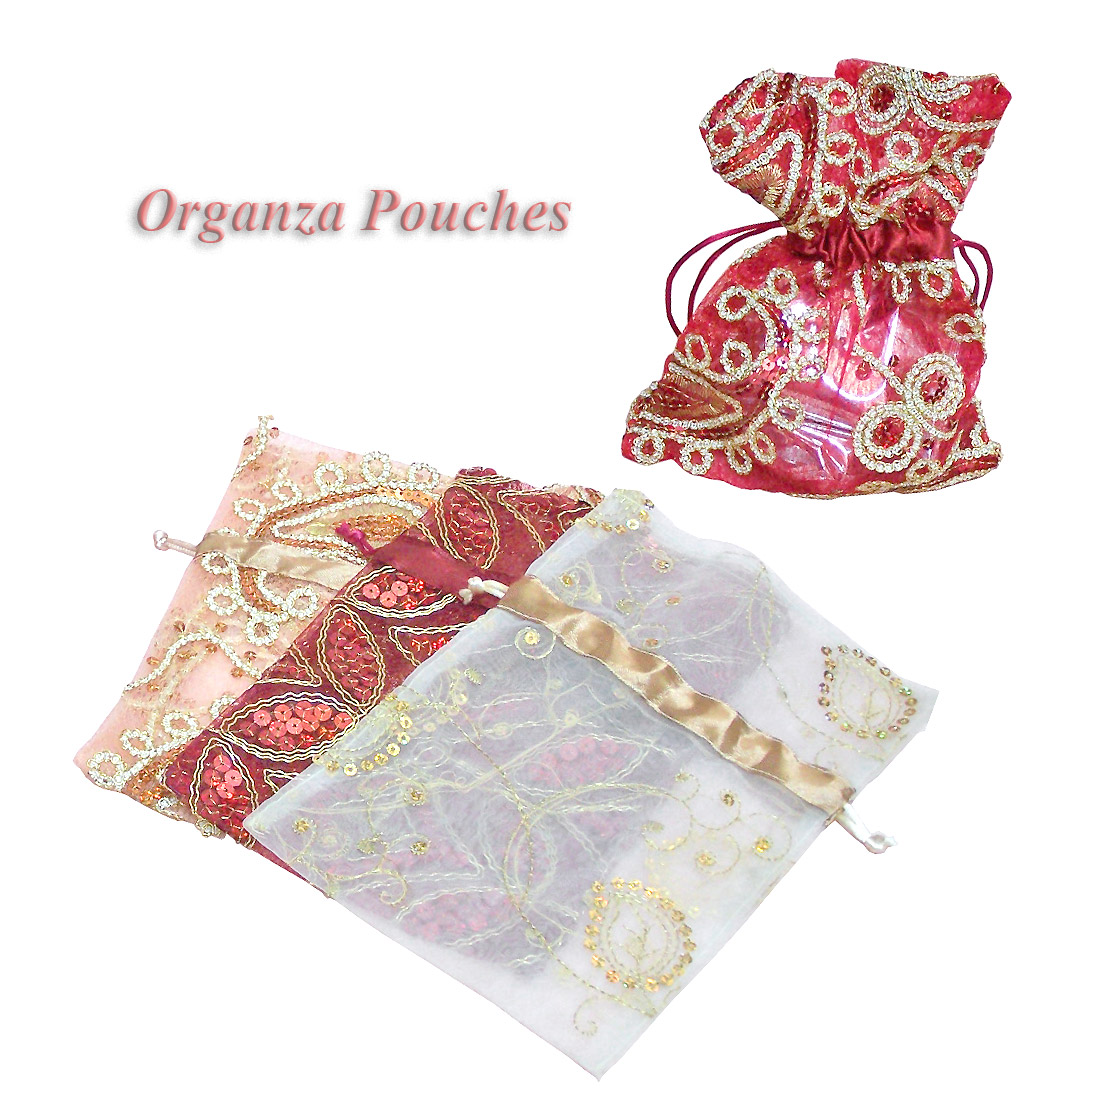 Glittering Organza Pouches 8x12inch Sheer Pouch